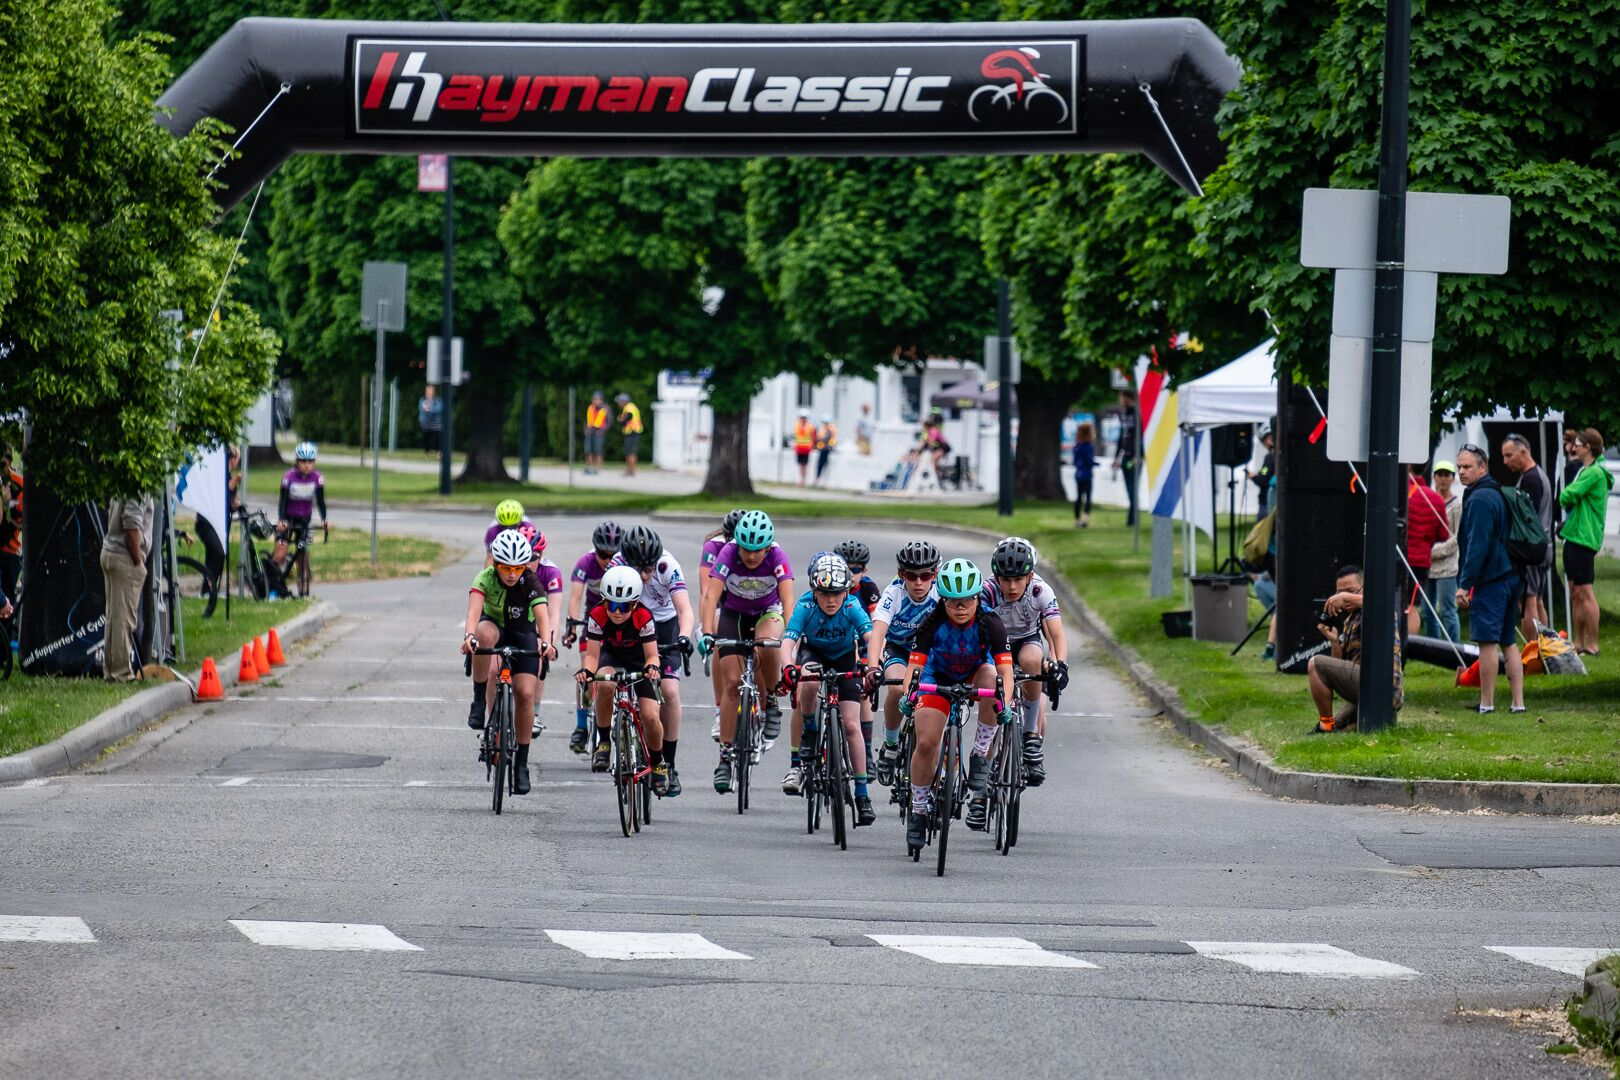 Mathilde (center in purple + turquoise helmet) taking the start of the crit. Photo by Cody W Gannon.